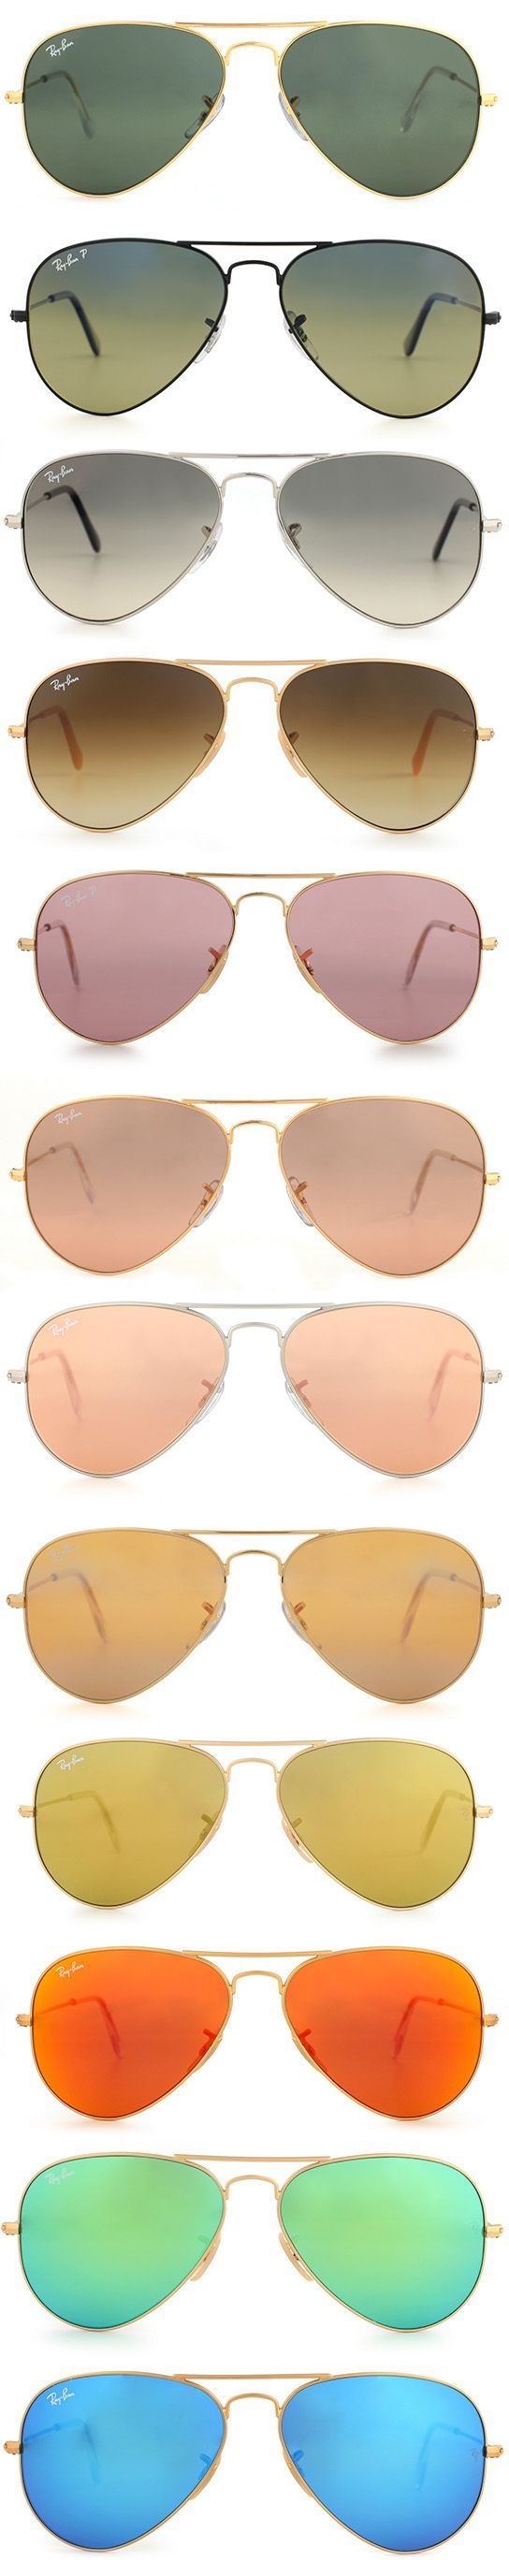 rb sunglasses outlet  17 Best ideas about Ray Ban Sunglasses Outlet on Pinterest